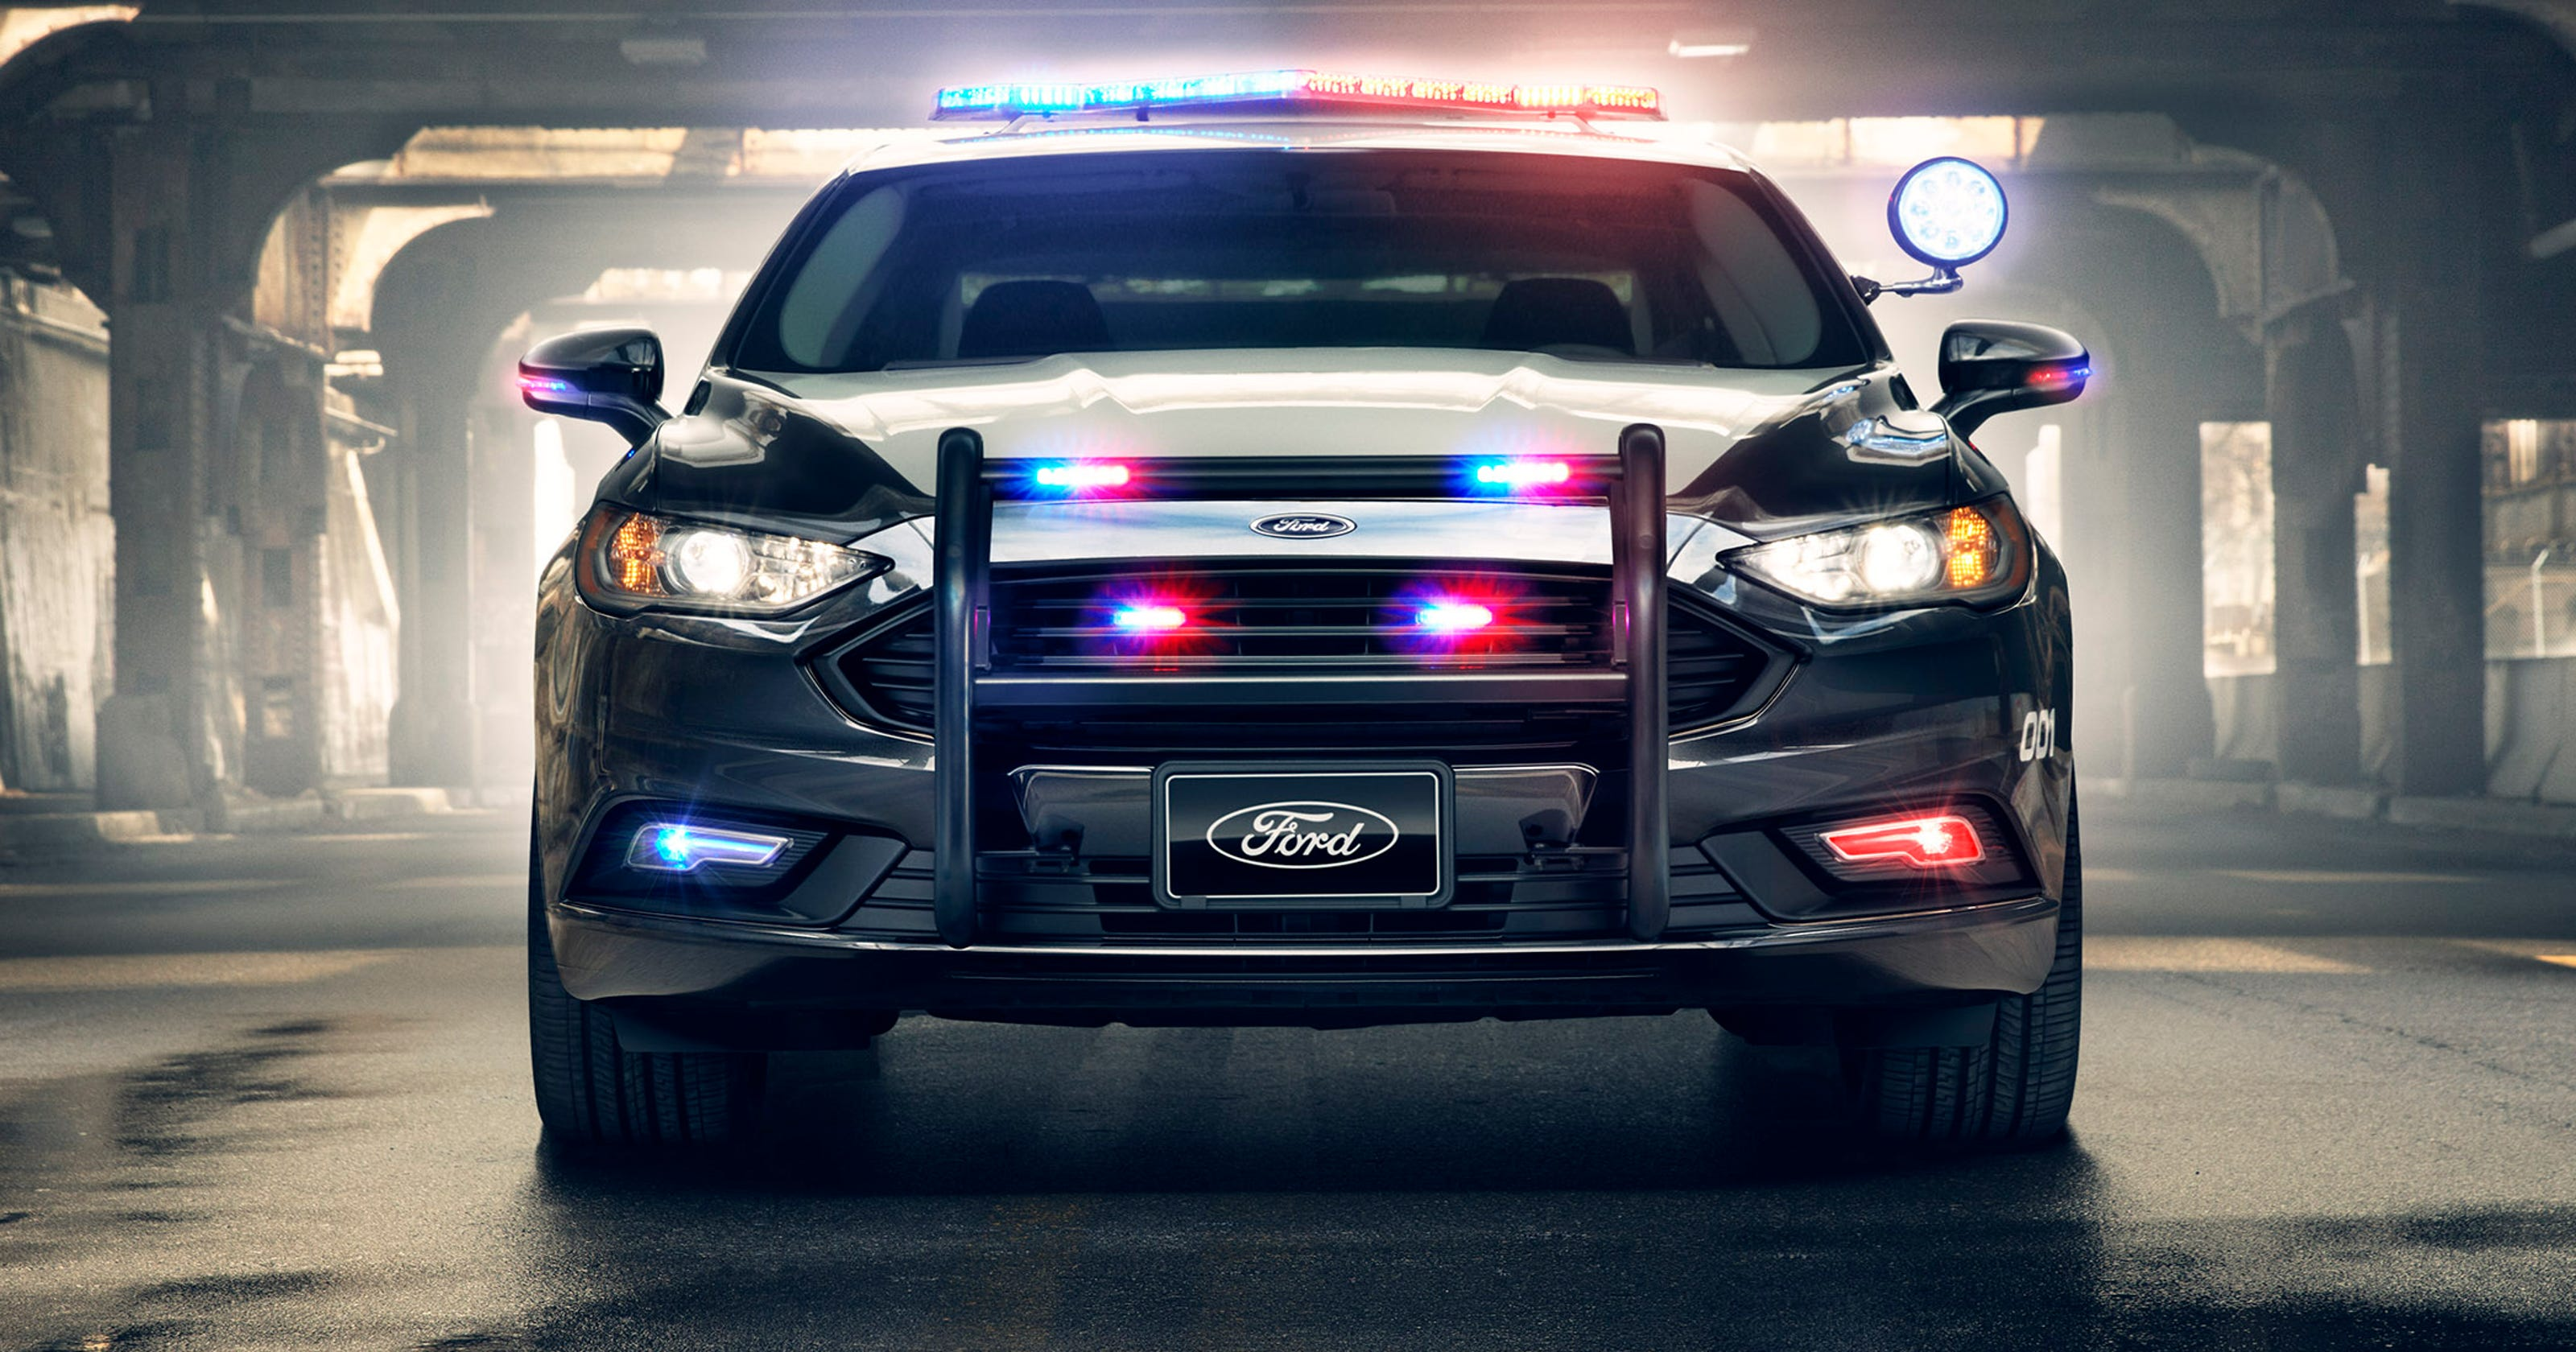 Ford Unveils First Pursuit Rated Hybrid Police Car For High Sd Chases